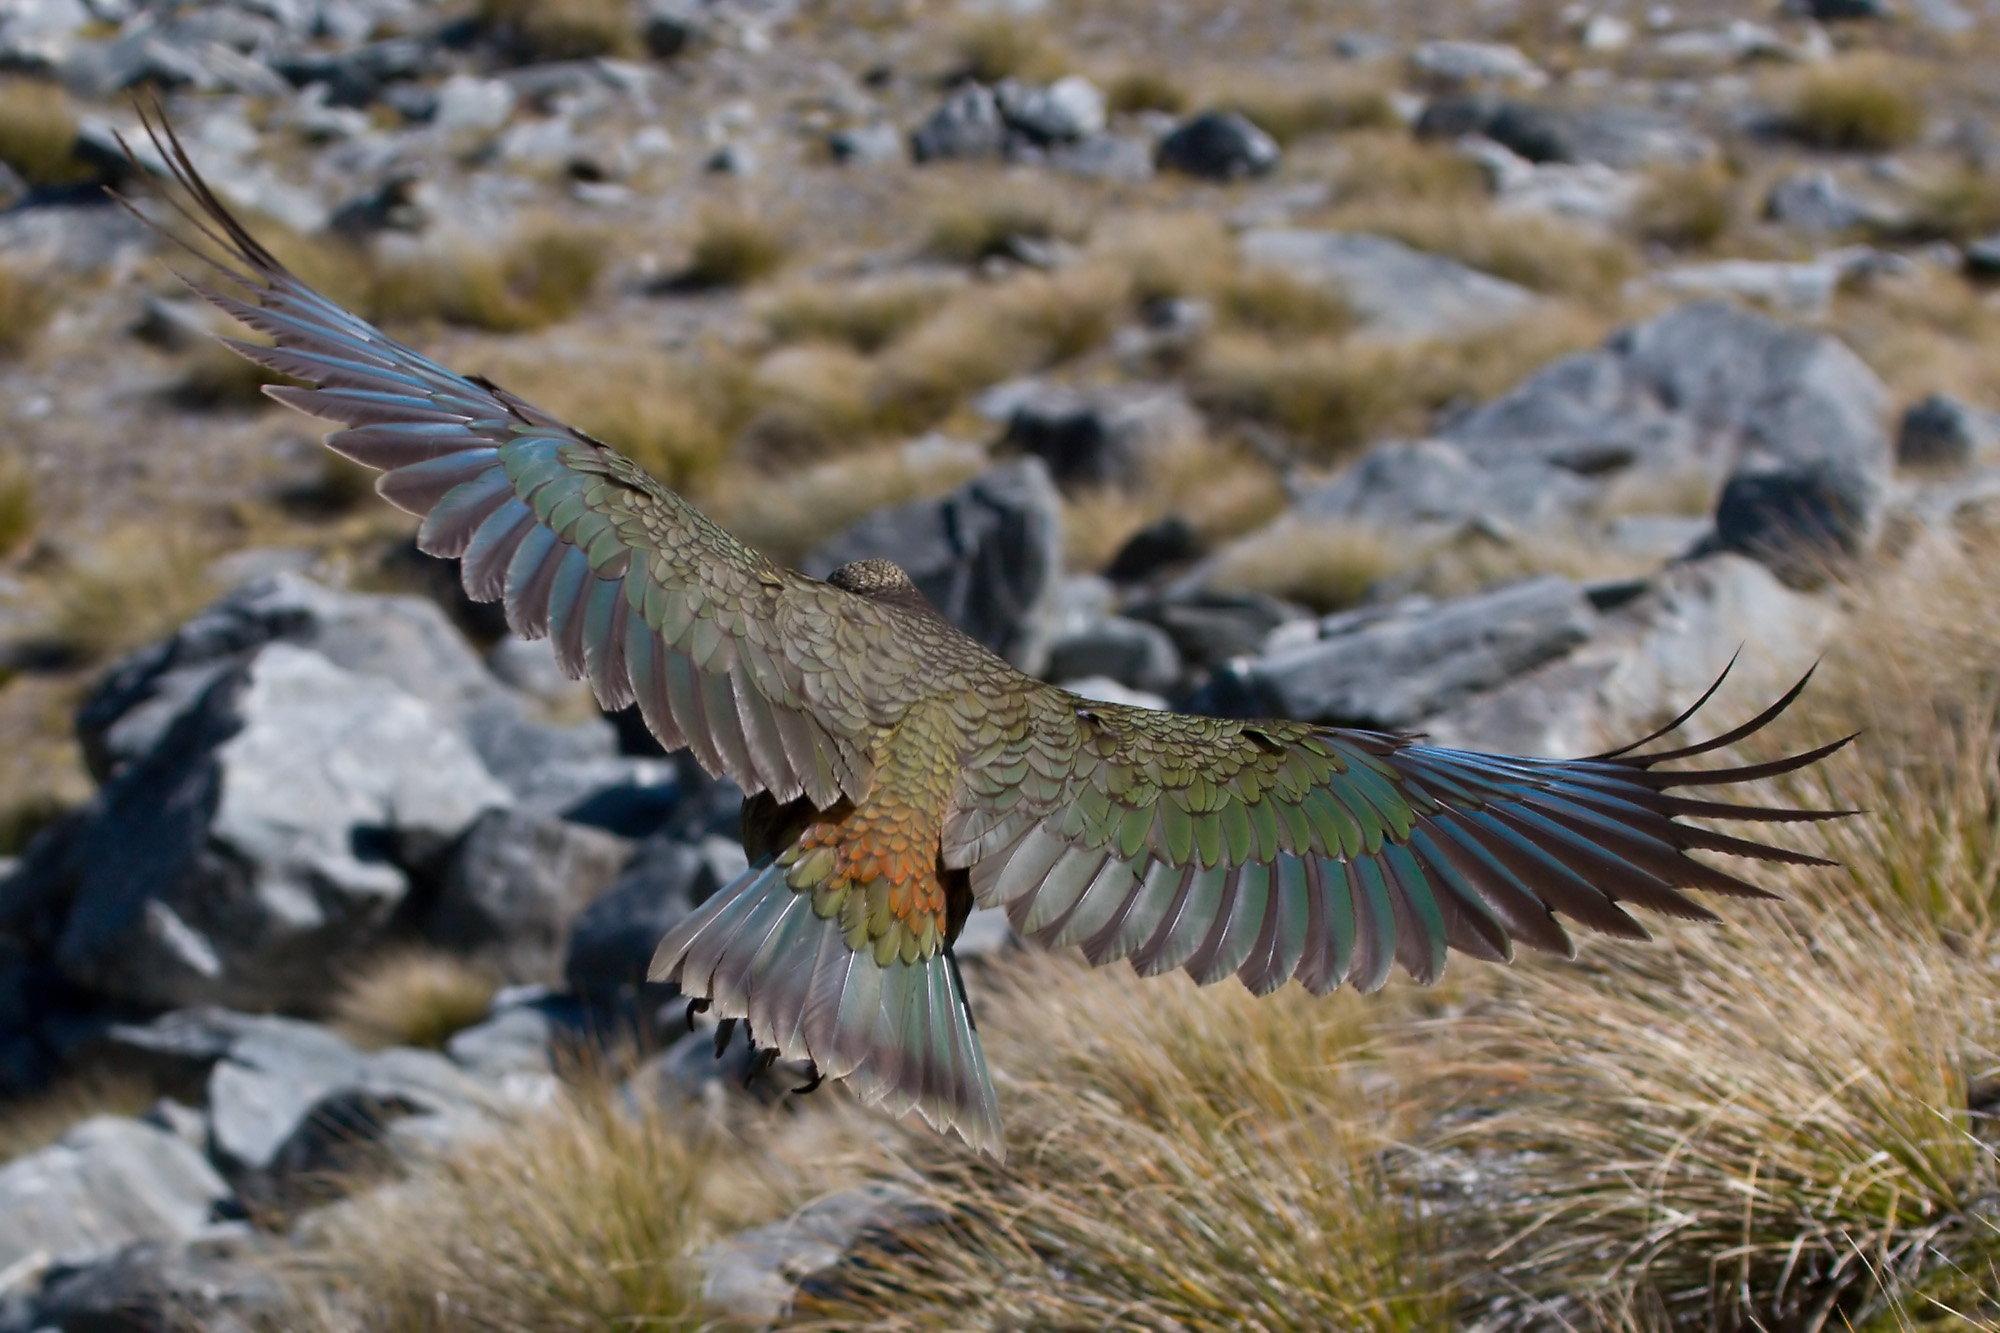 Kea in flight, by  Christian Mehlführer